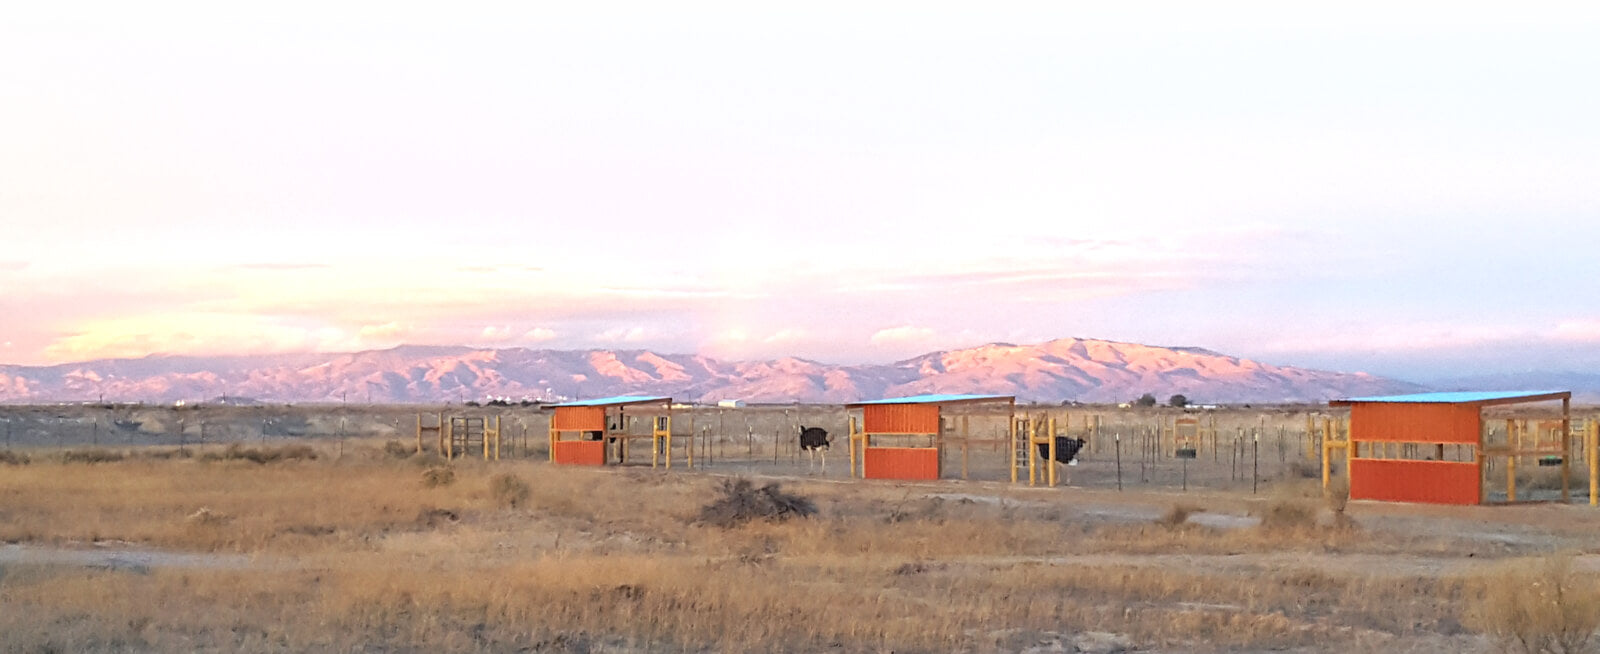 American Ostrich Farms in Kuna, Idaho